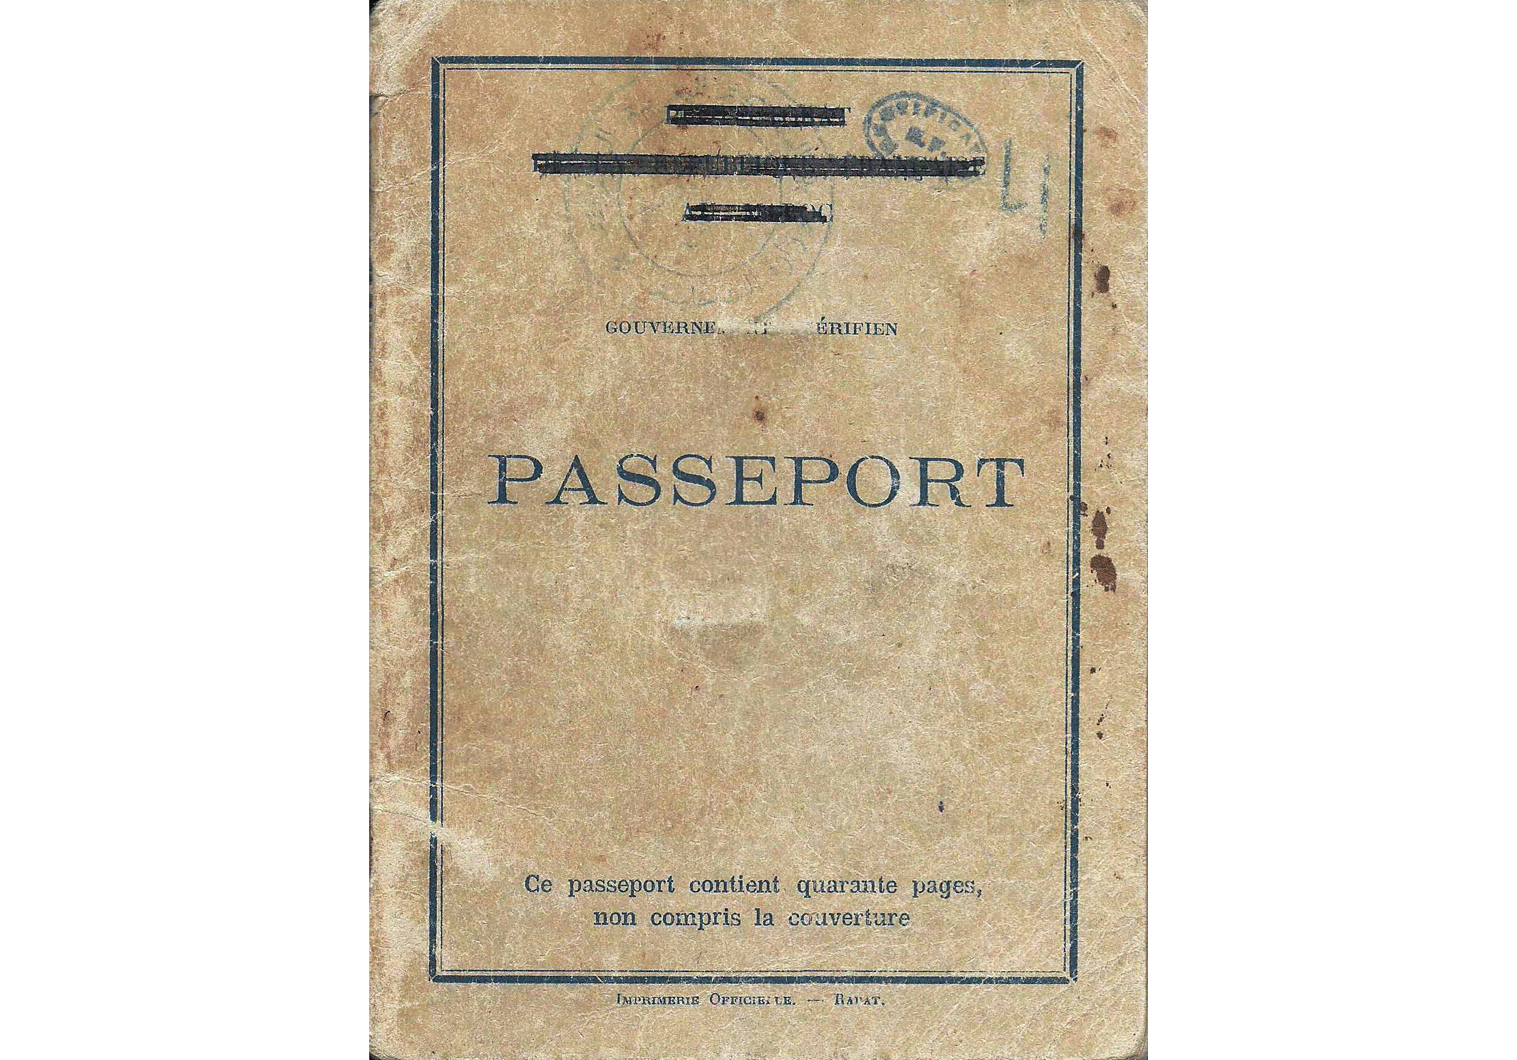 Moroccan interim French visa from 1956